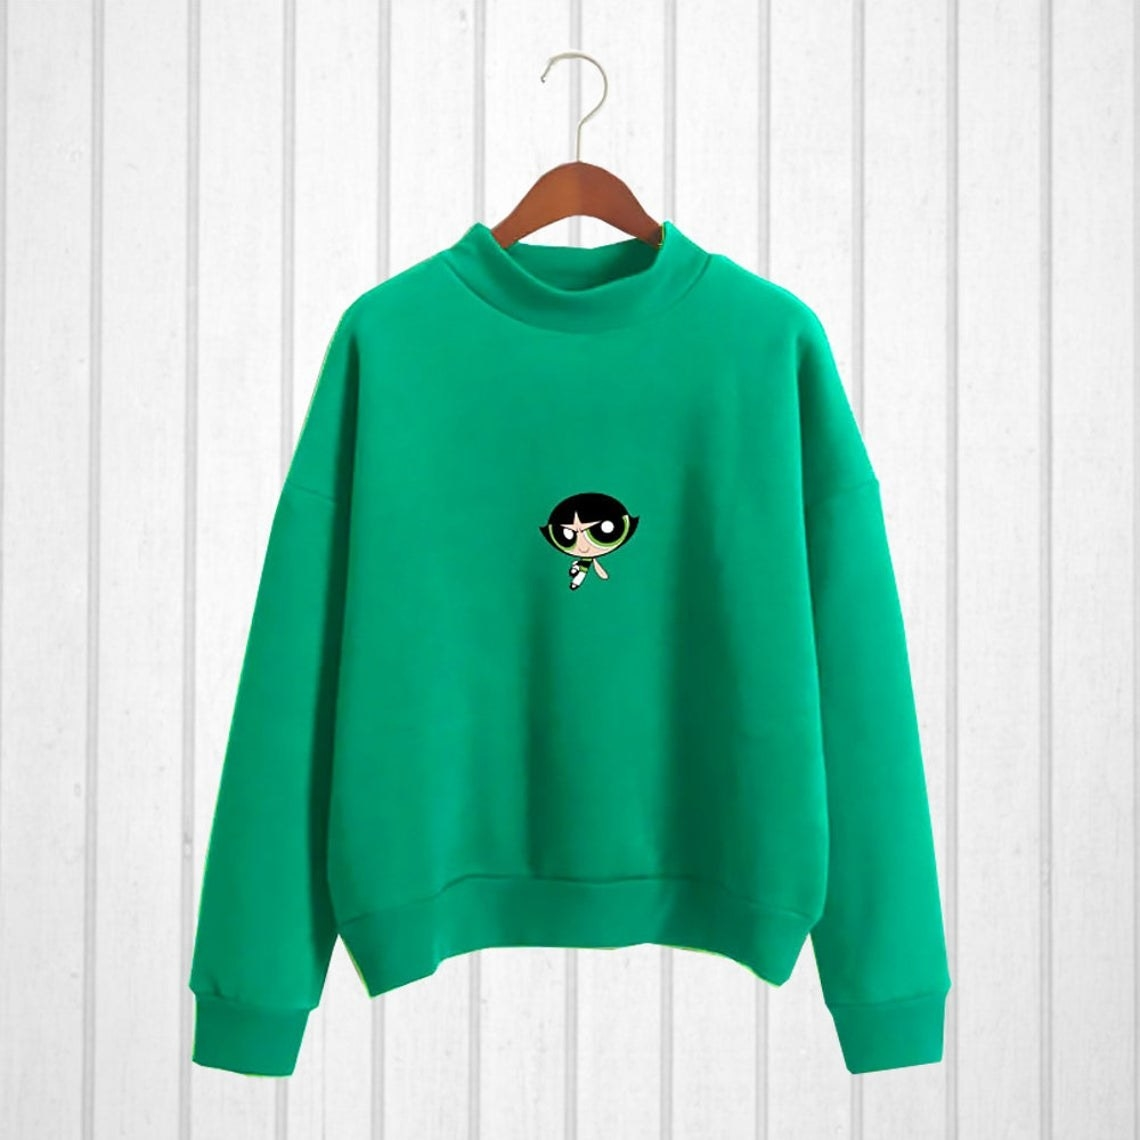 A vibrant crew neck sweater with an image of Buttercup on the front